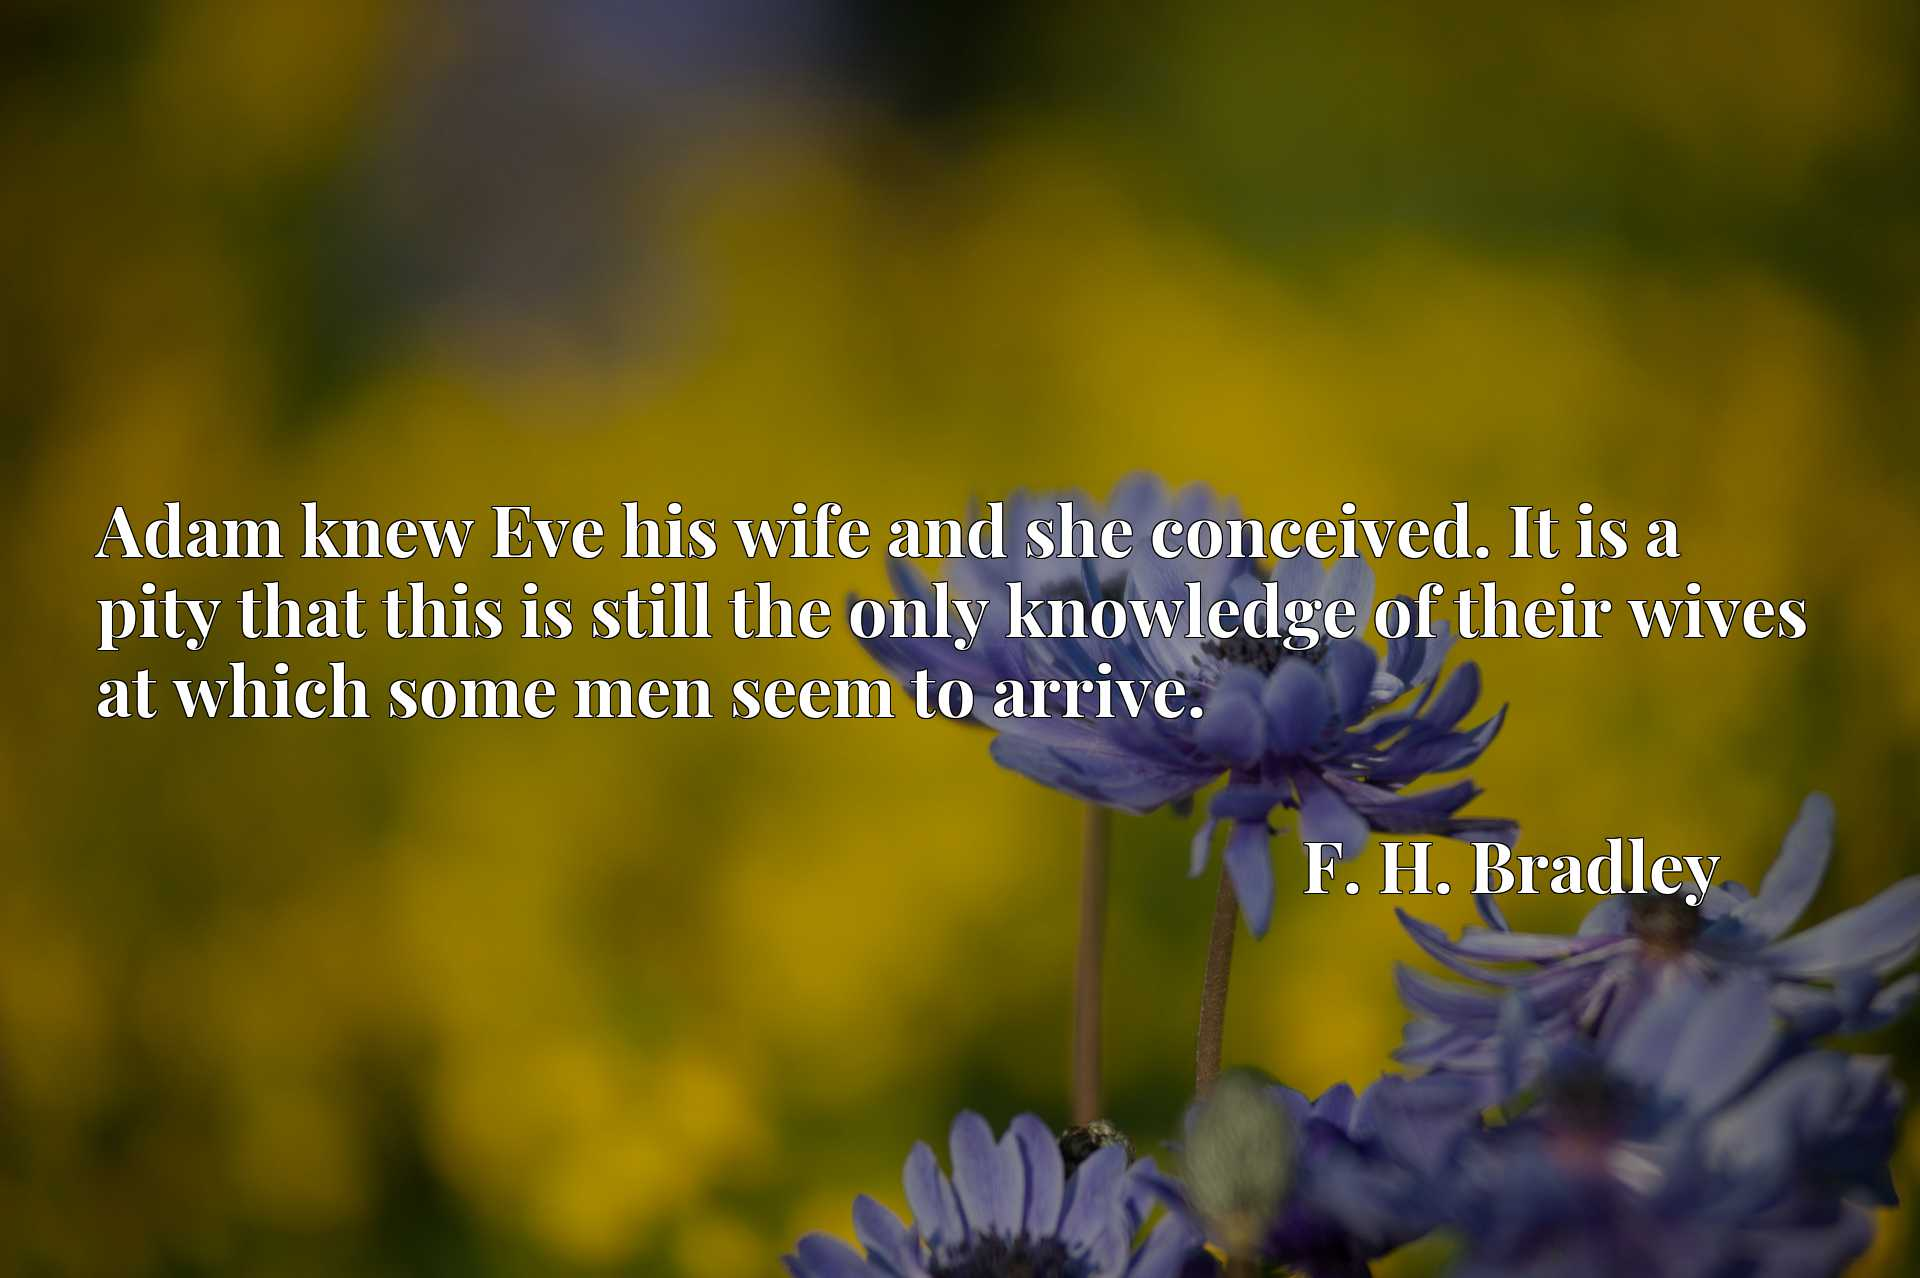 Quote Picture :Adam knew Eve his wife and she conceived. It is a pity that this is still the only knowledge of their wives at which some men seem to arrive.